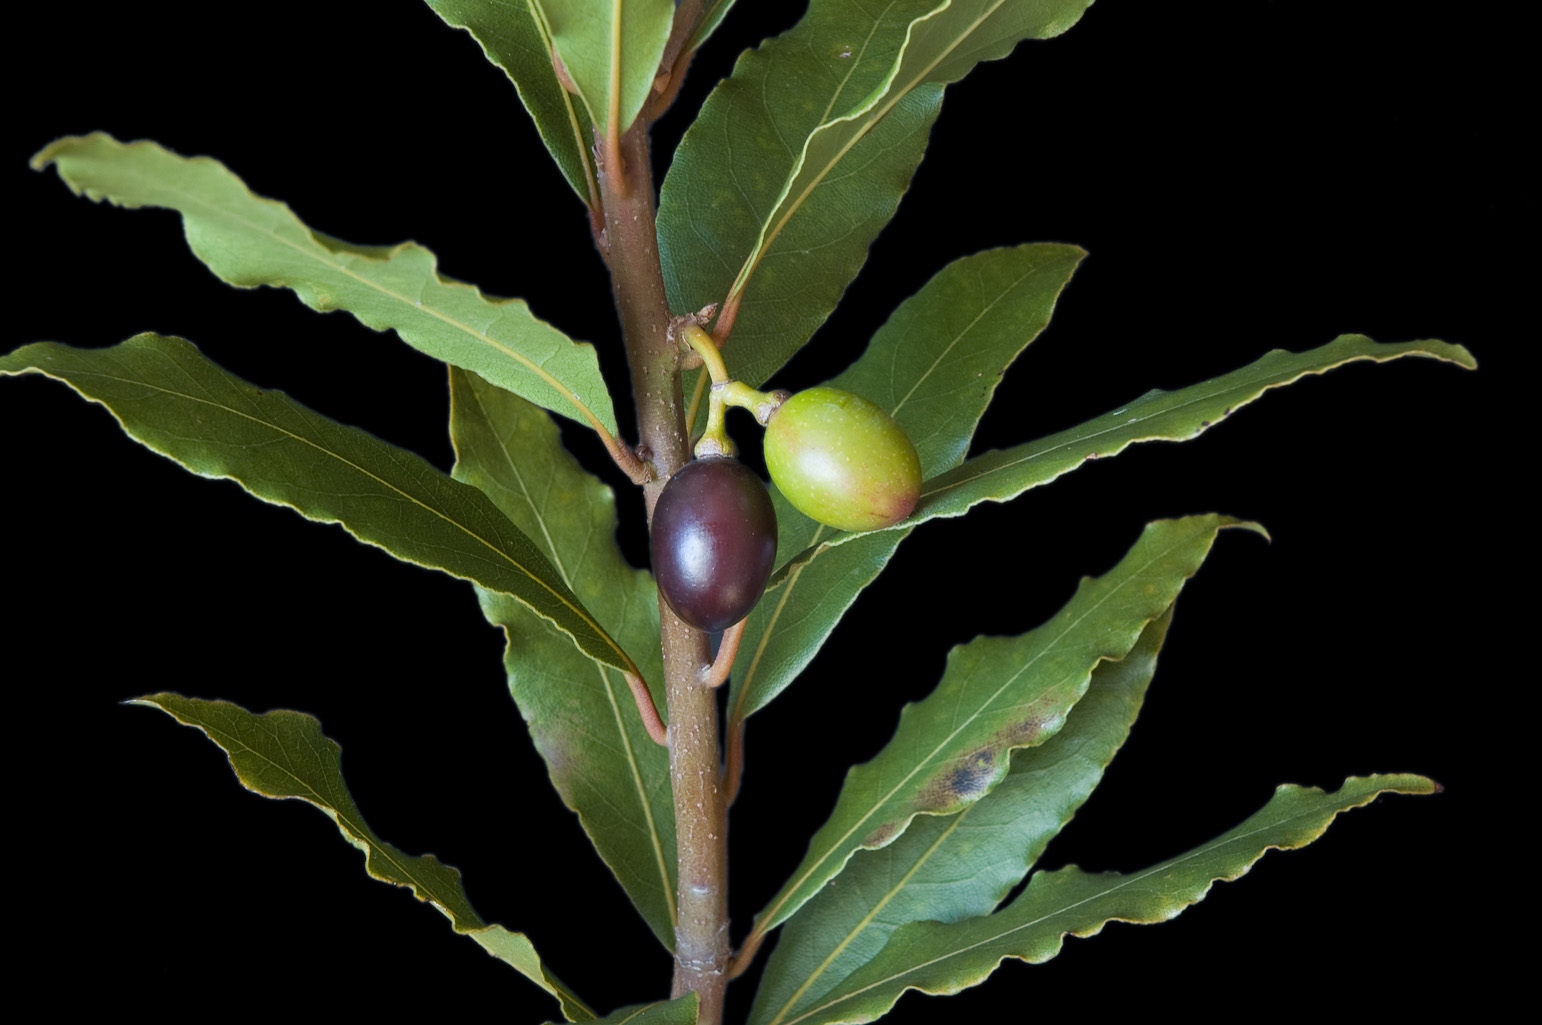 Branch with 2 olive-like drupes; the one on the left, black with purplish reflections, is almost mature